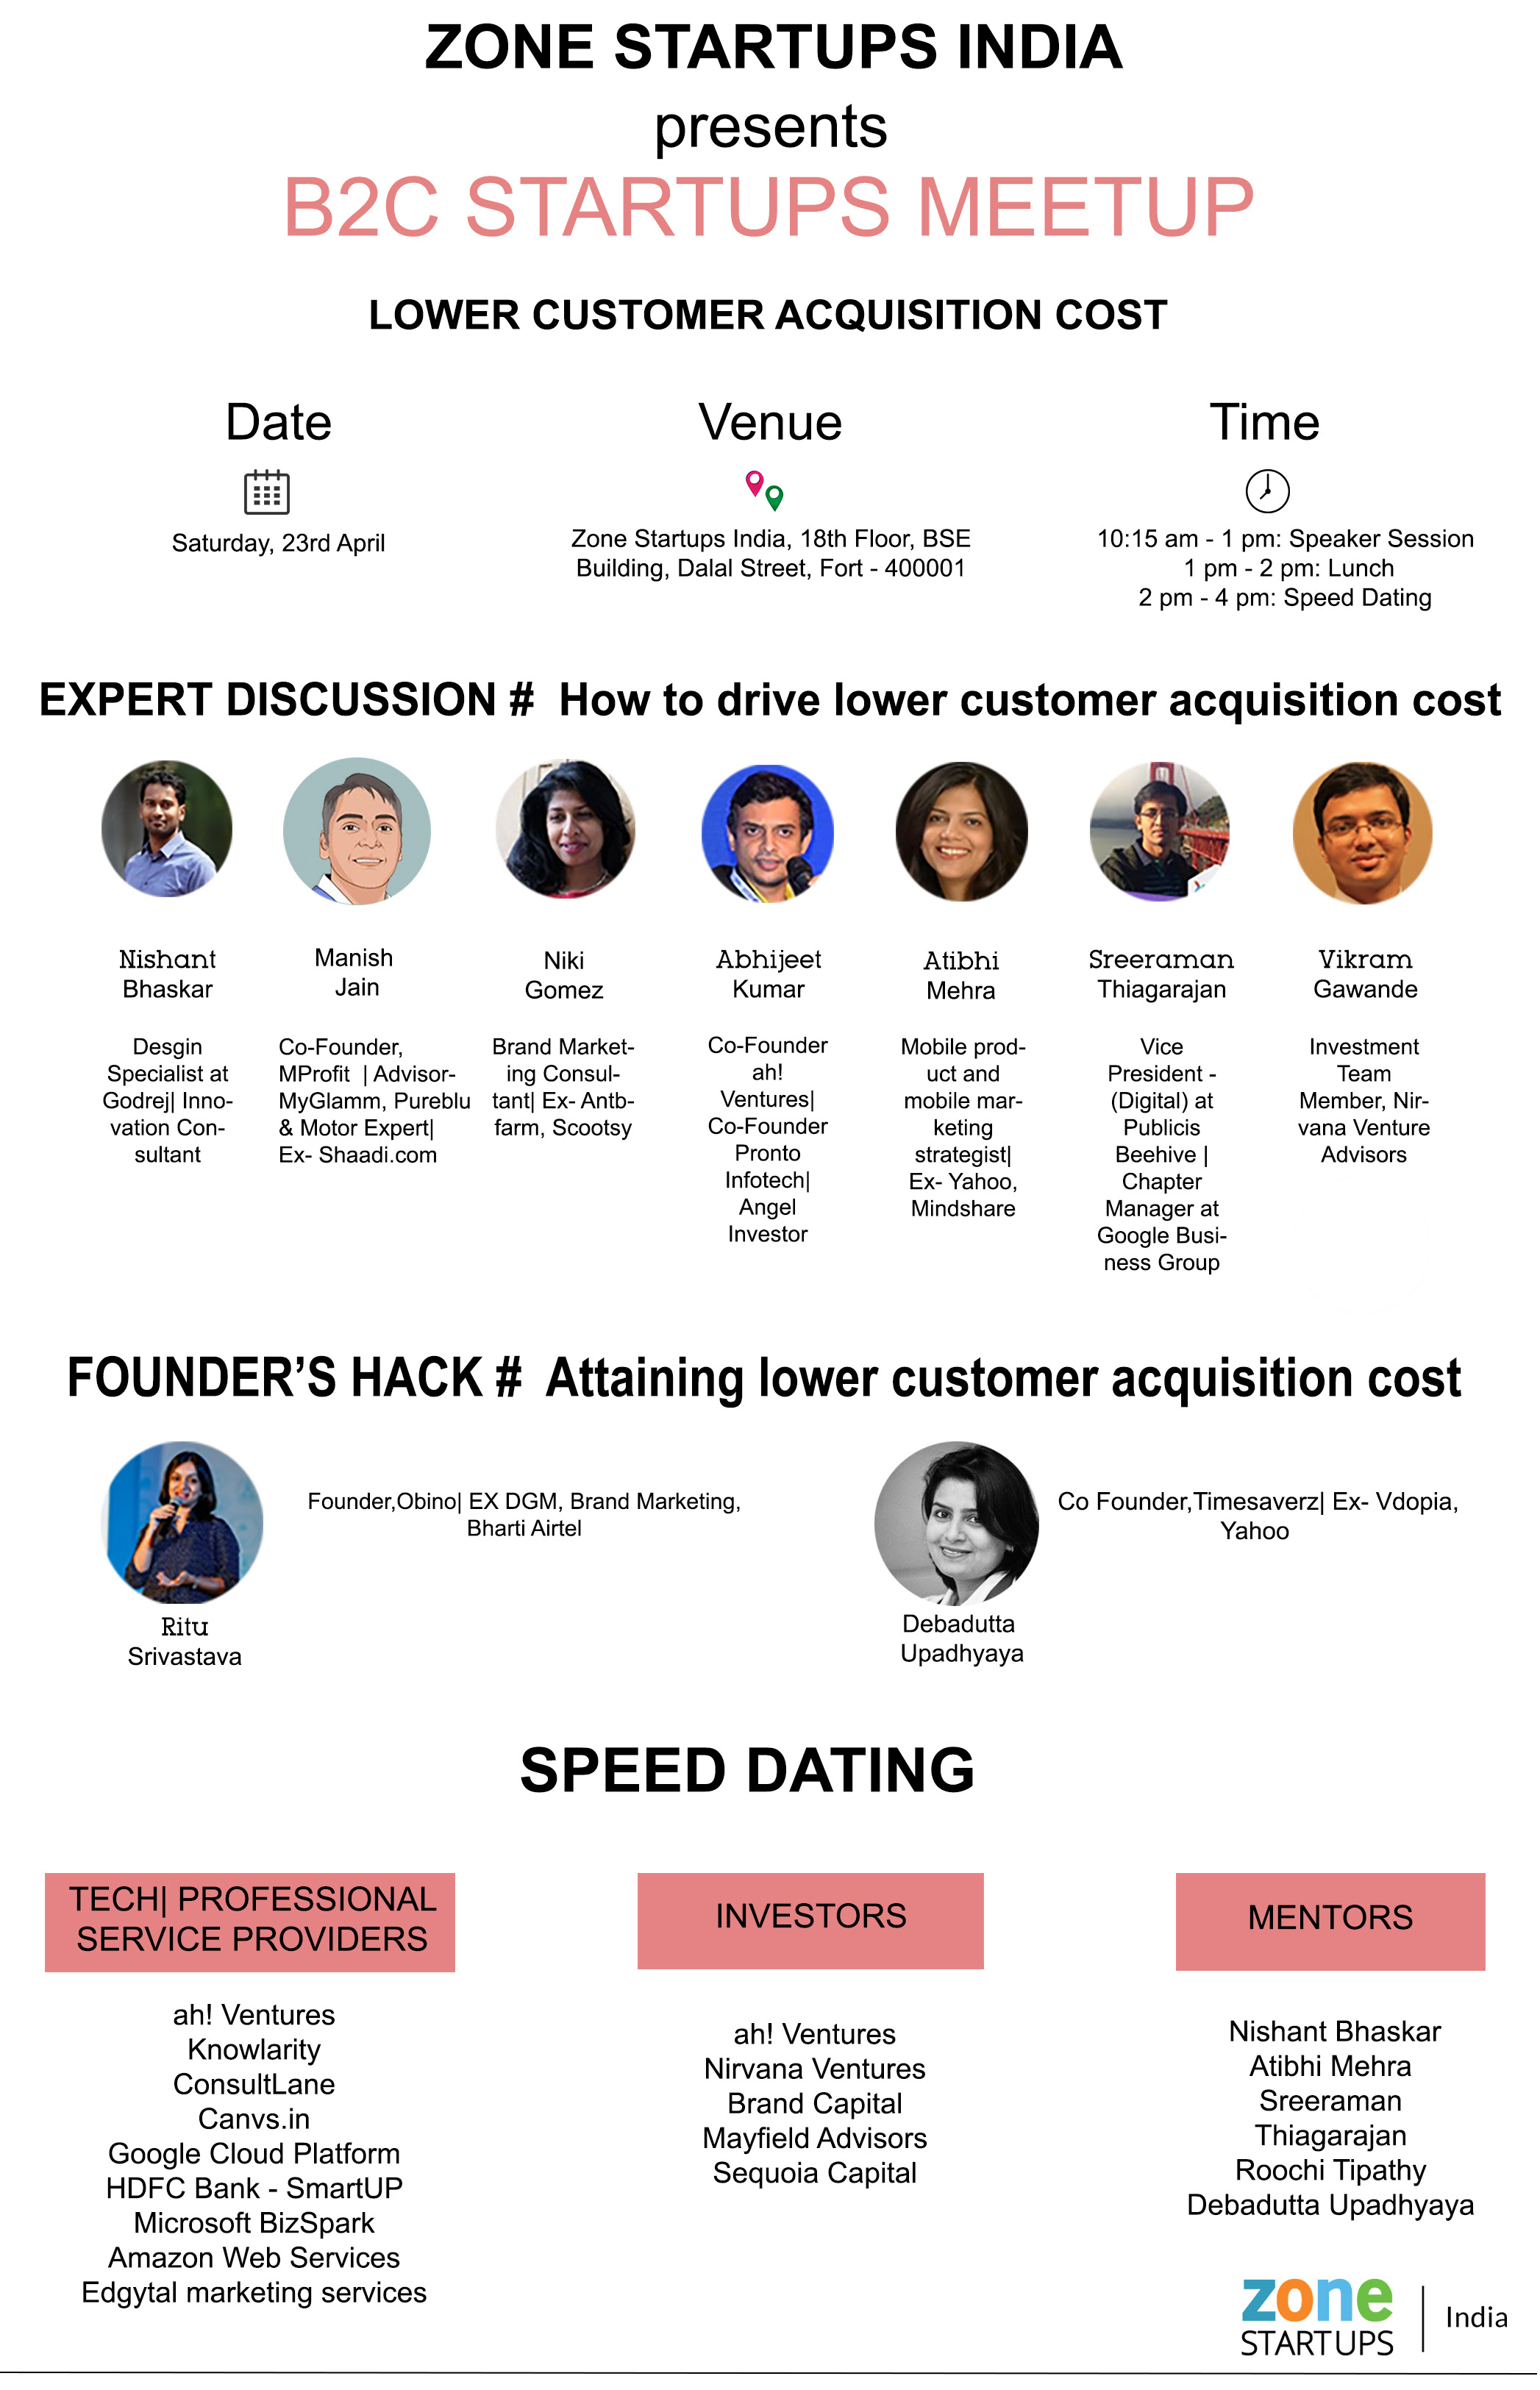 speed dating event london